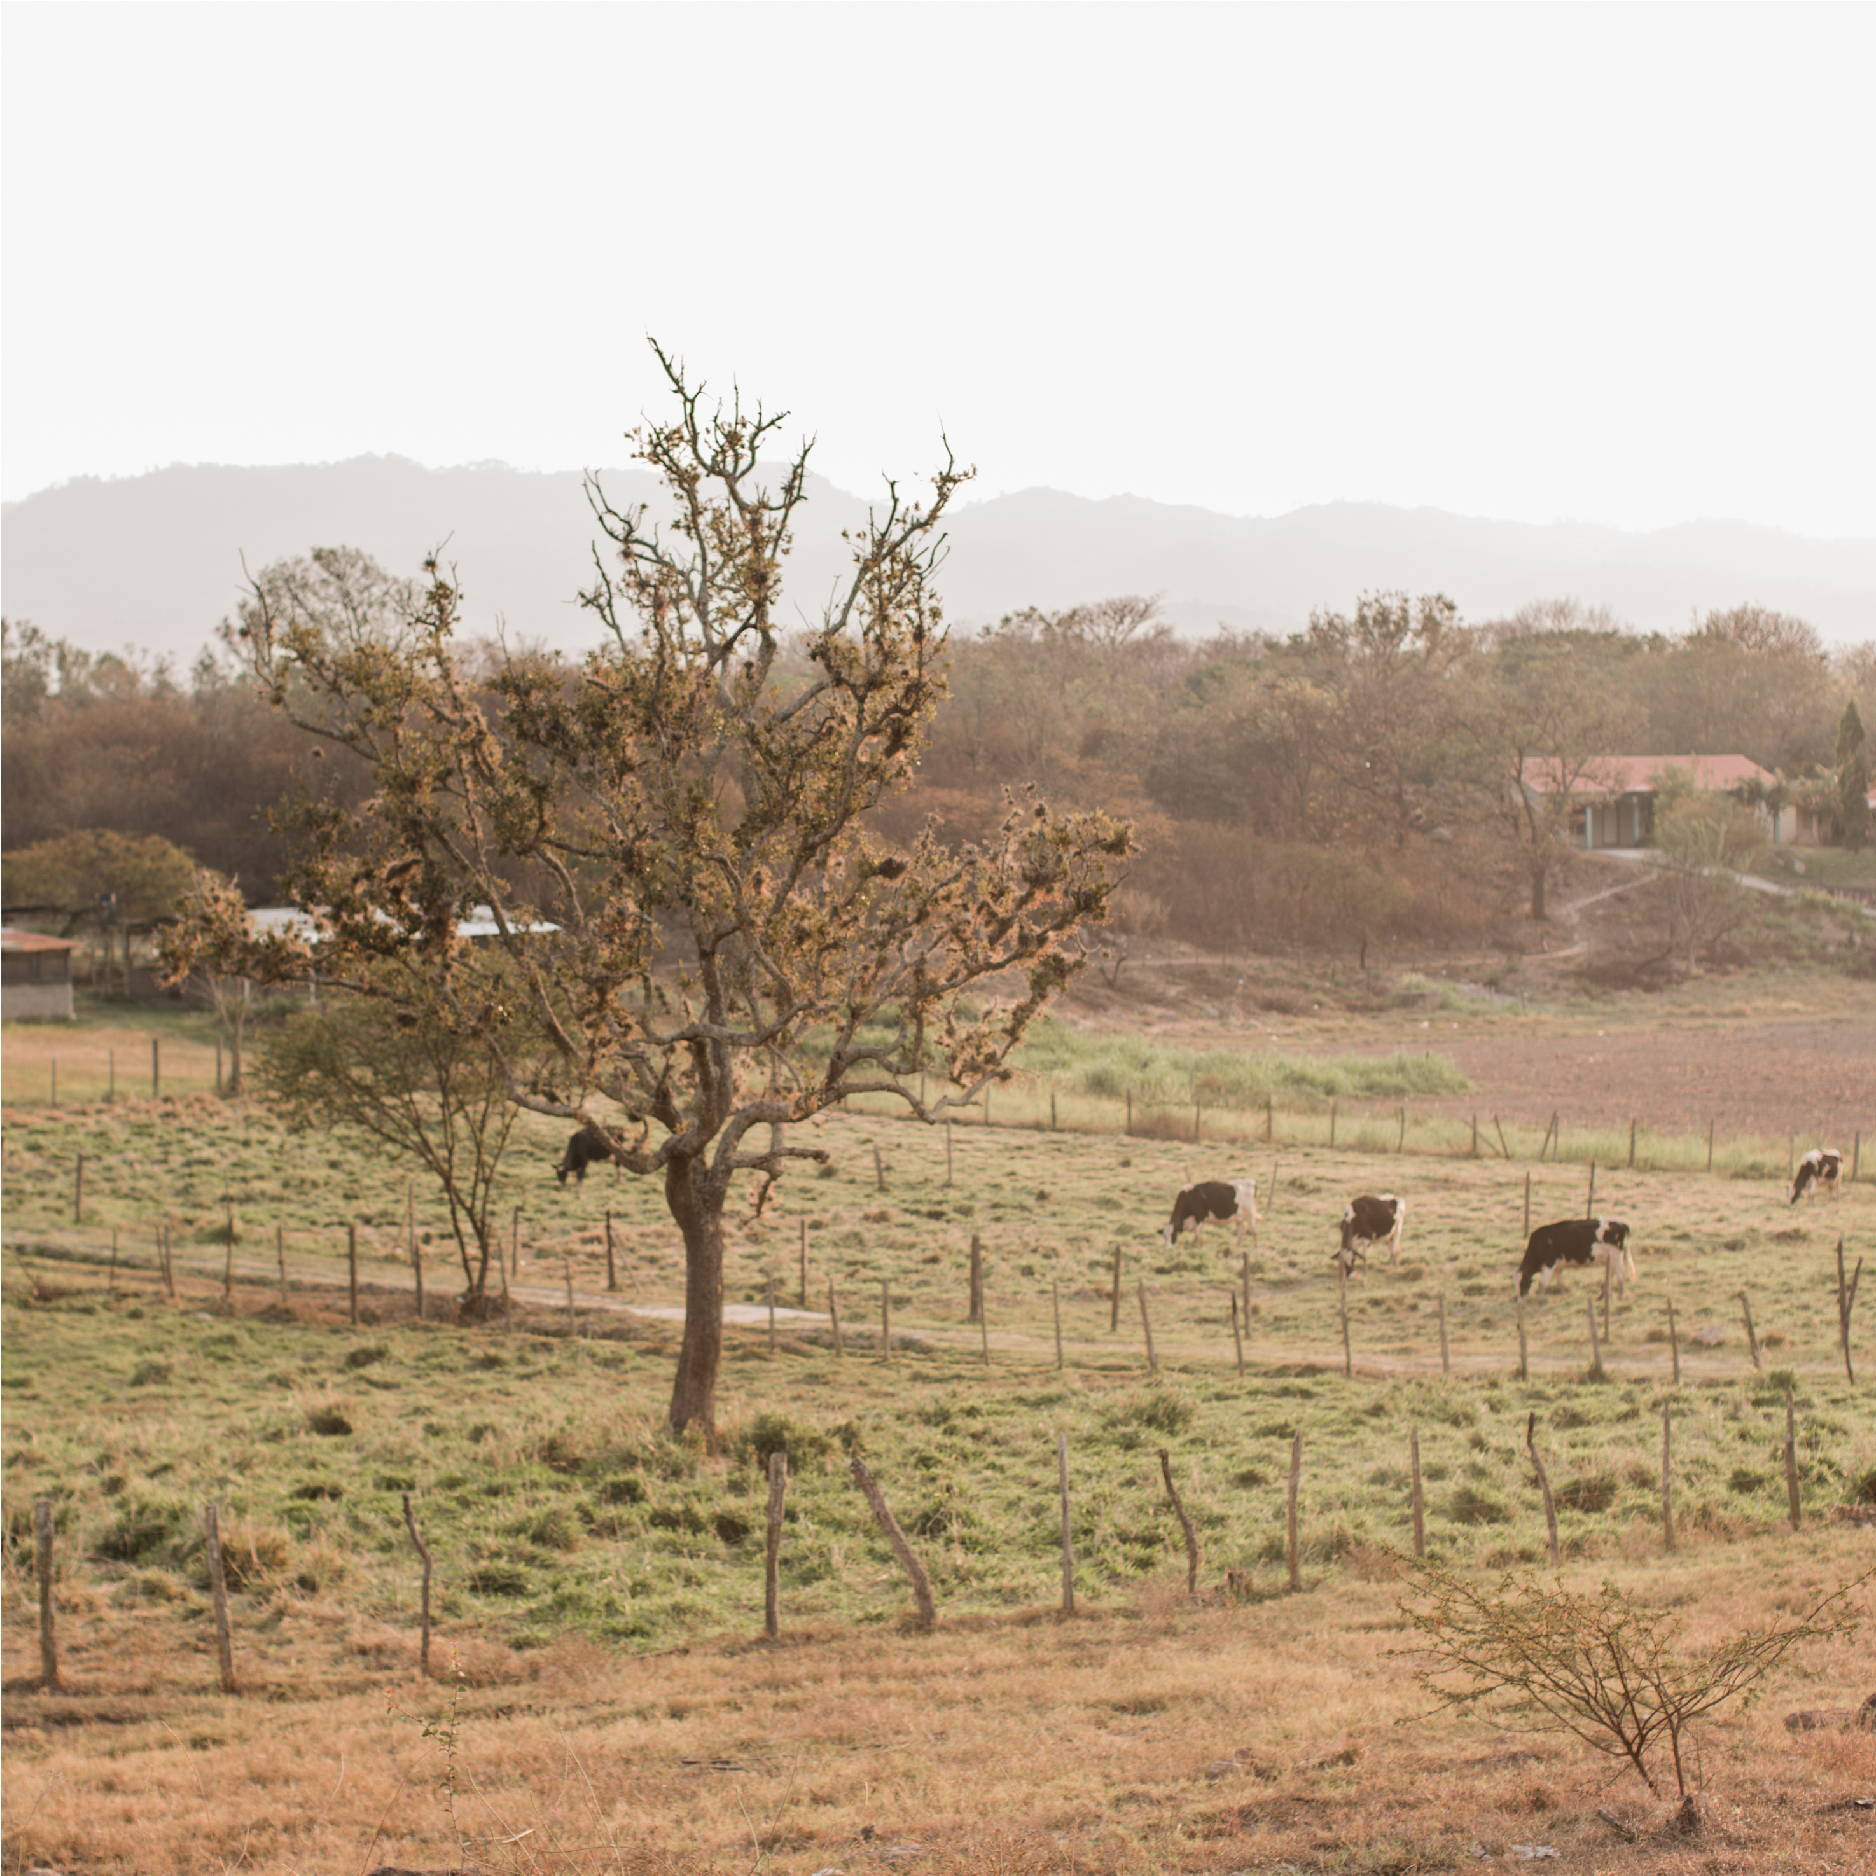 Several cows graze in a fenced in field at Good Shepherd Children's Home in the Zamarano Valley in Honduras.